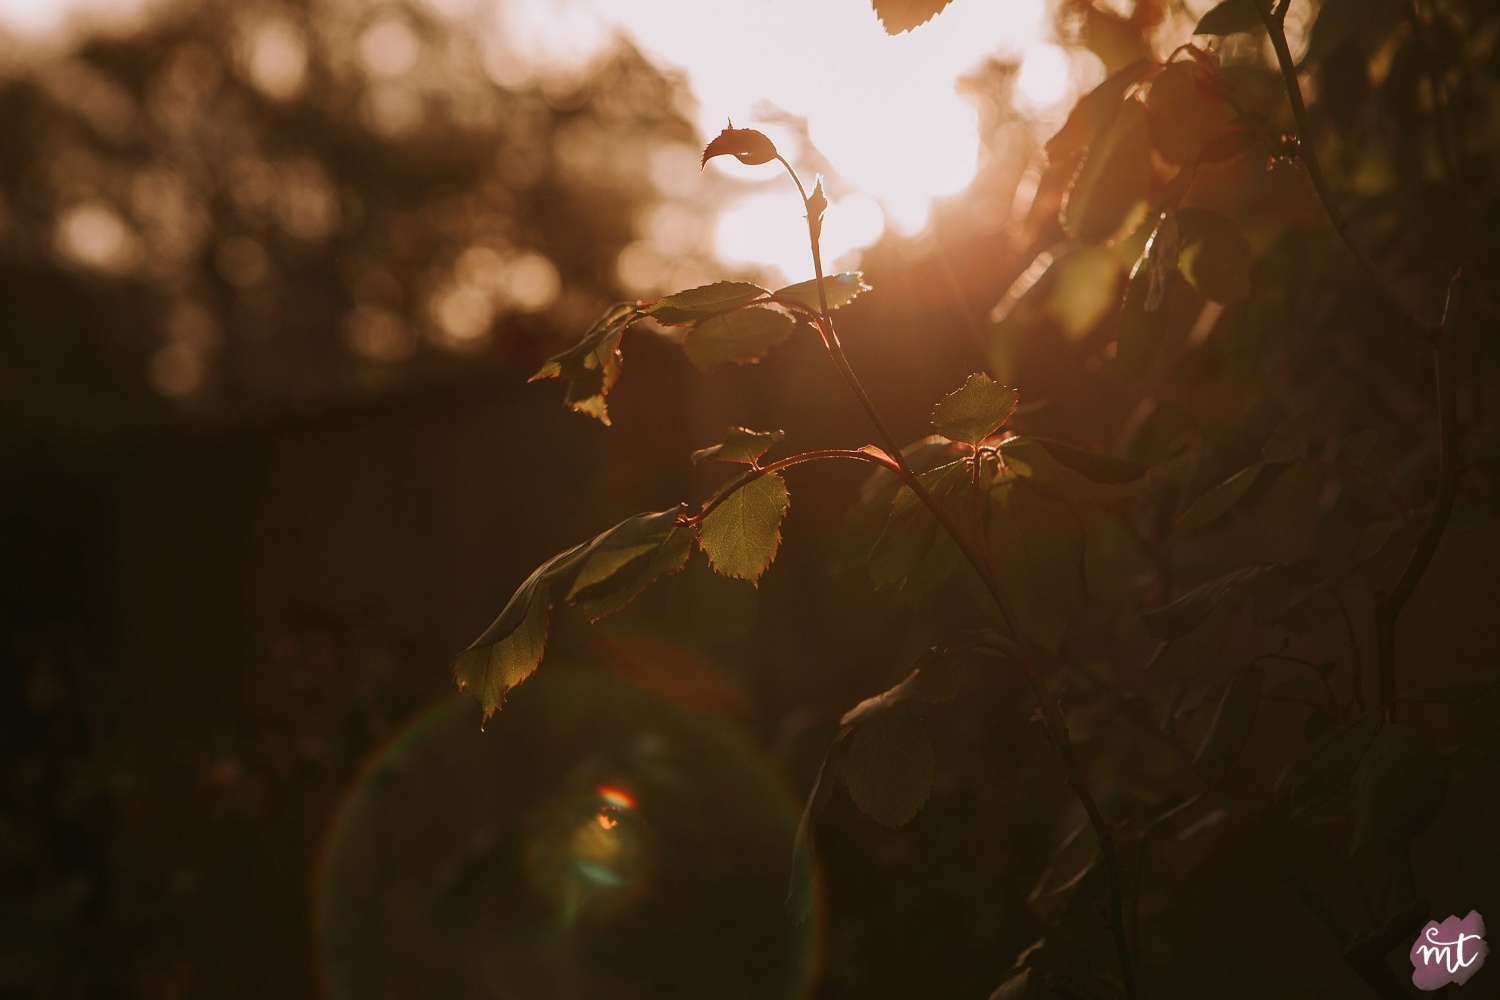 Seasons, Autumn, Natural Light, UK Photographer, Real Life, Mother Nature